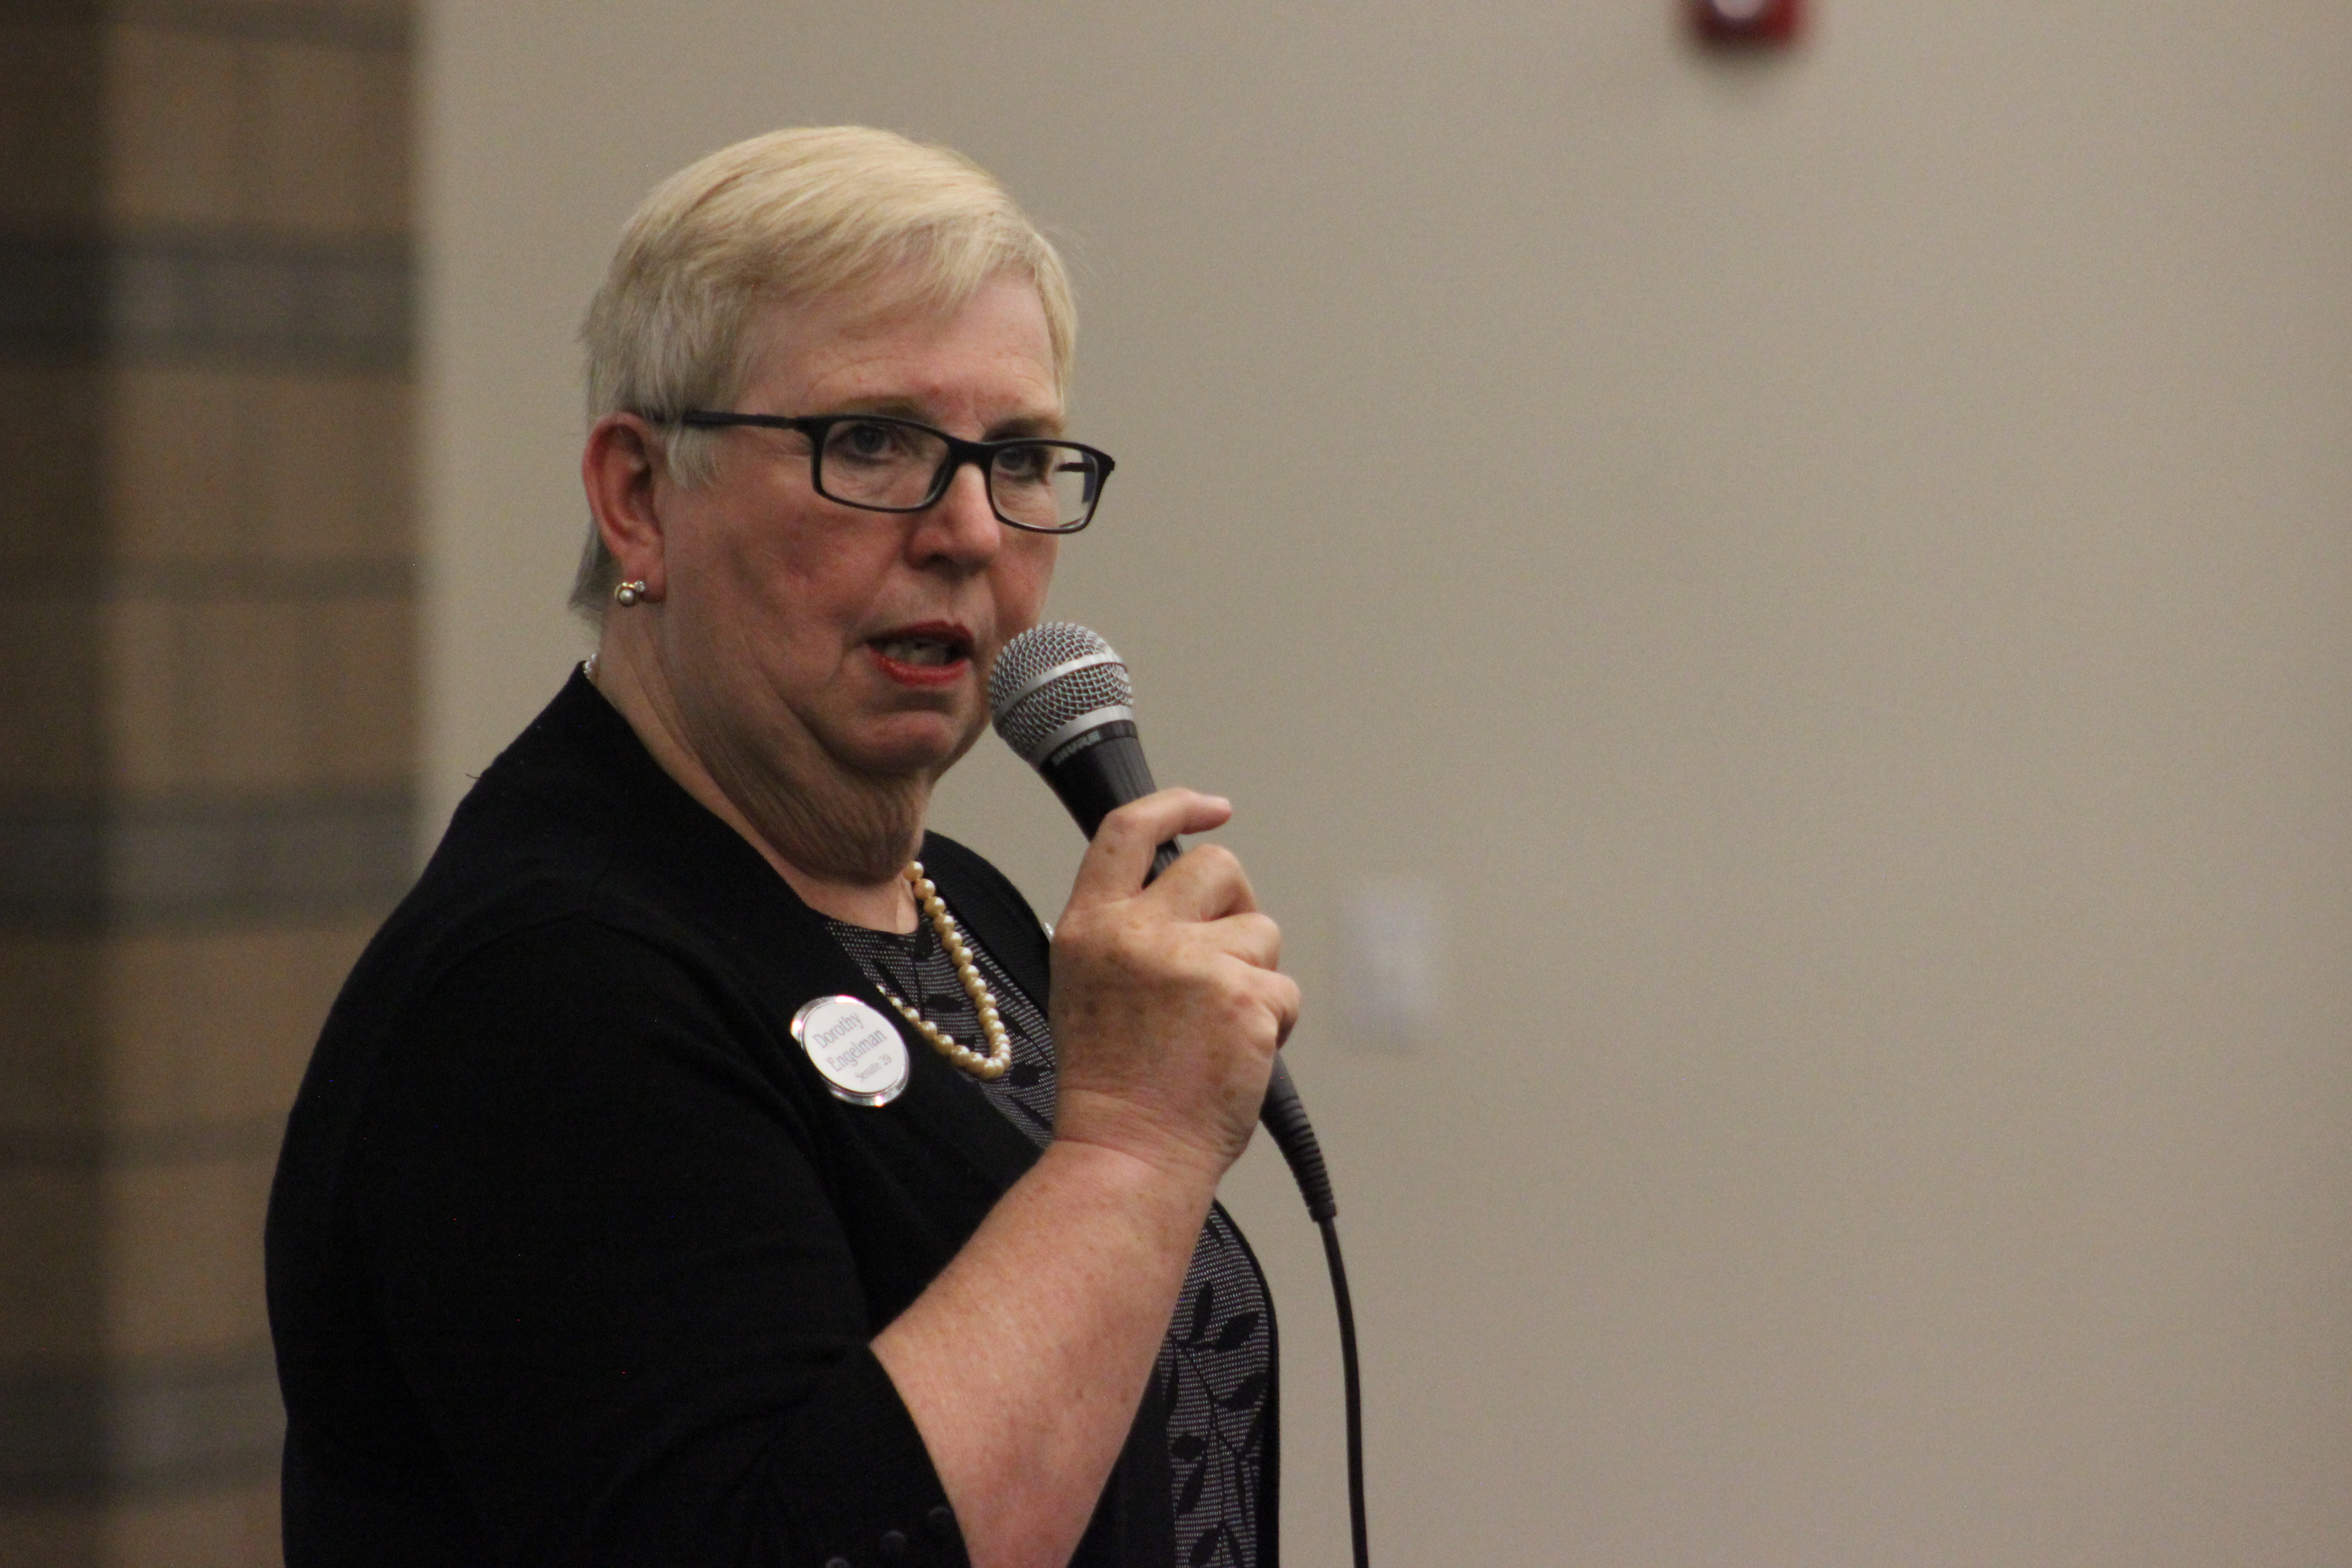 Utah Senate candidate Dorothy Engelman discusses her candidacy at the Washington County Democratic covention at Tonaquint Intermediate School in St. George, Utah, April 2, 2016 | Photo by Don Gilman, St. George News